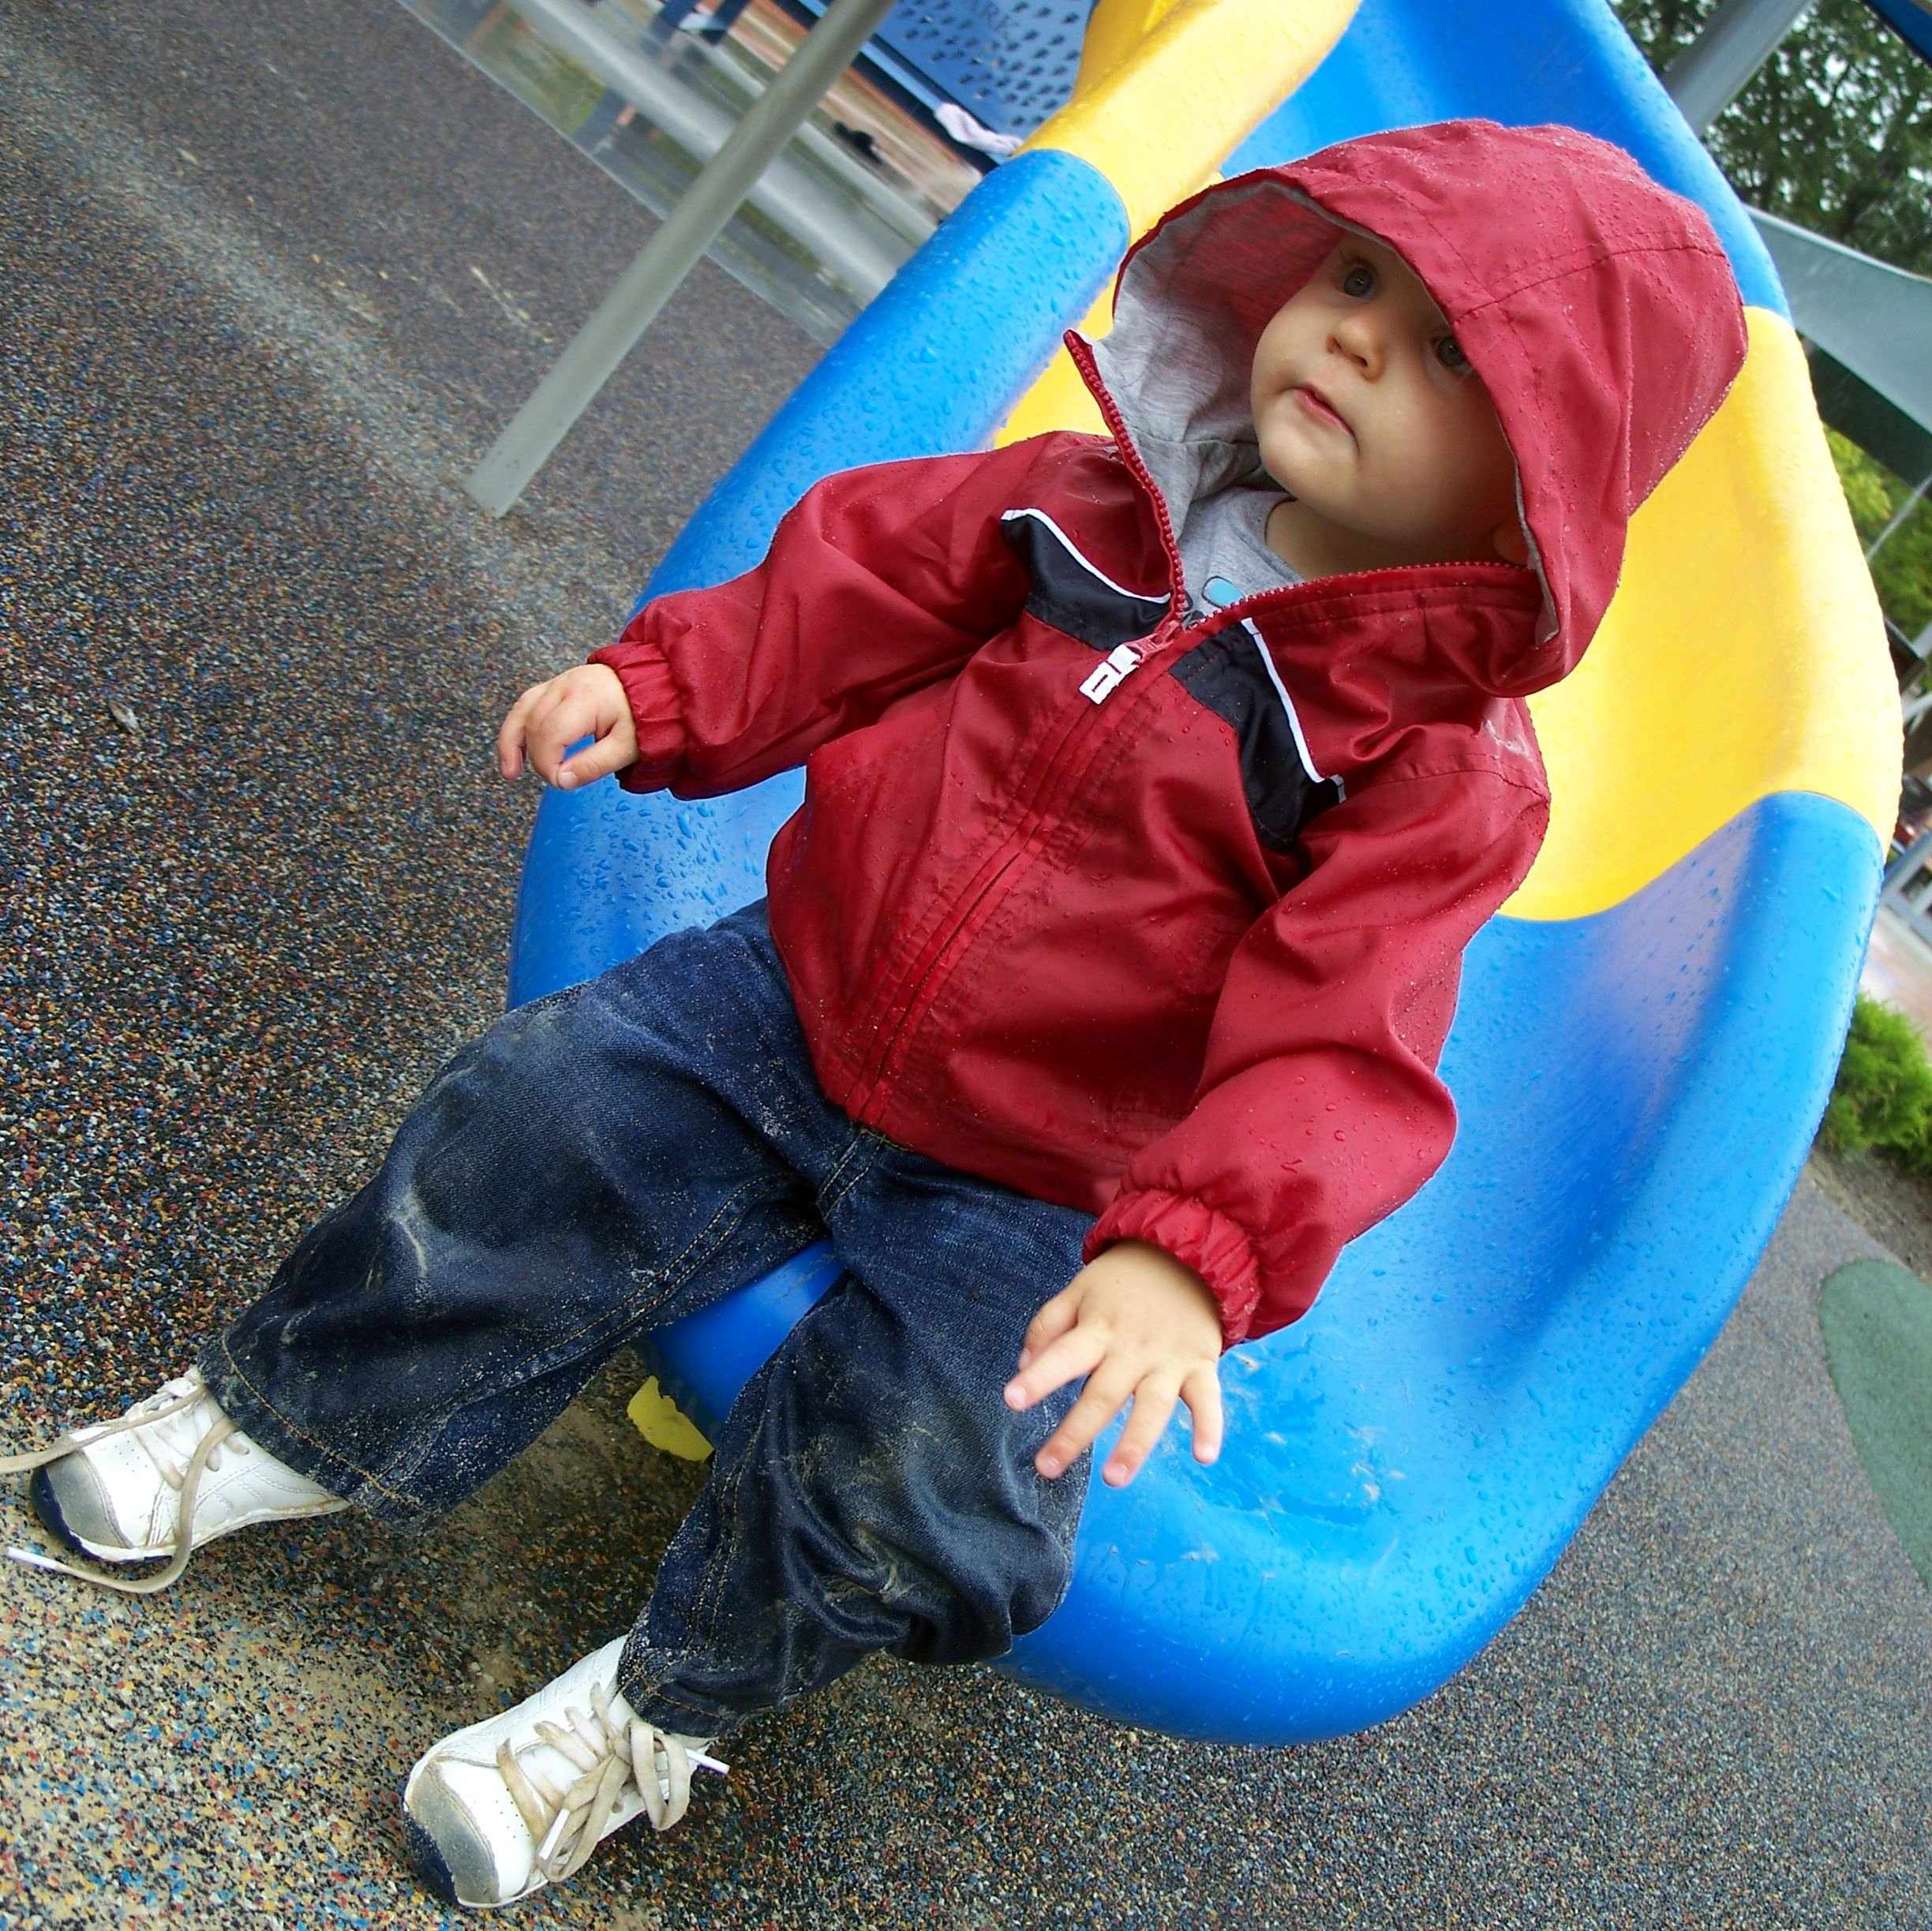 carter-on-slide